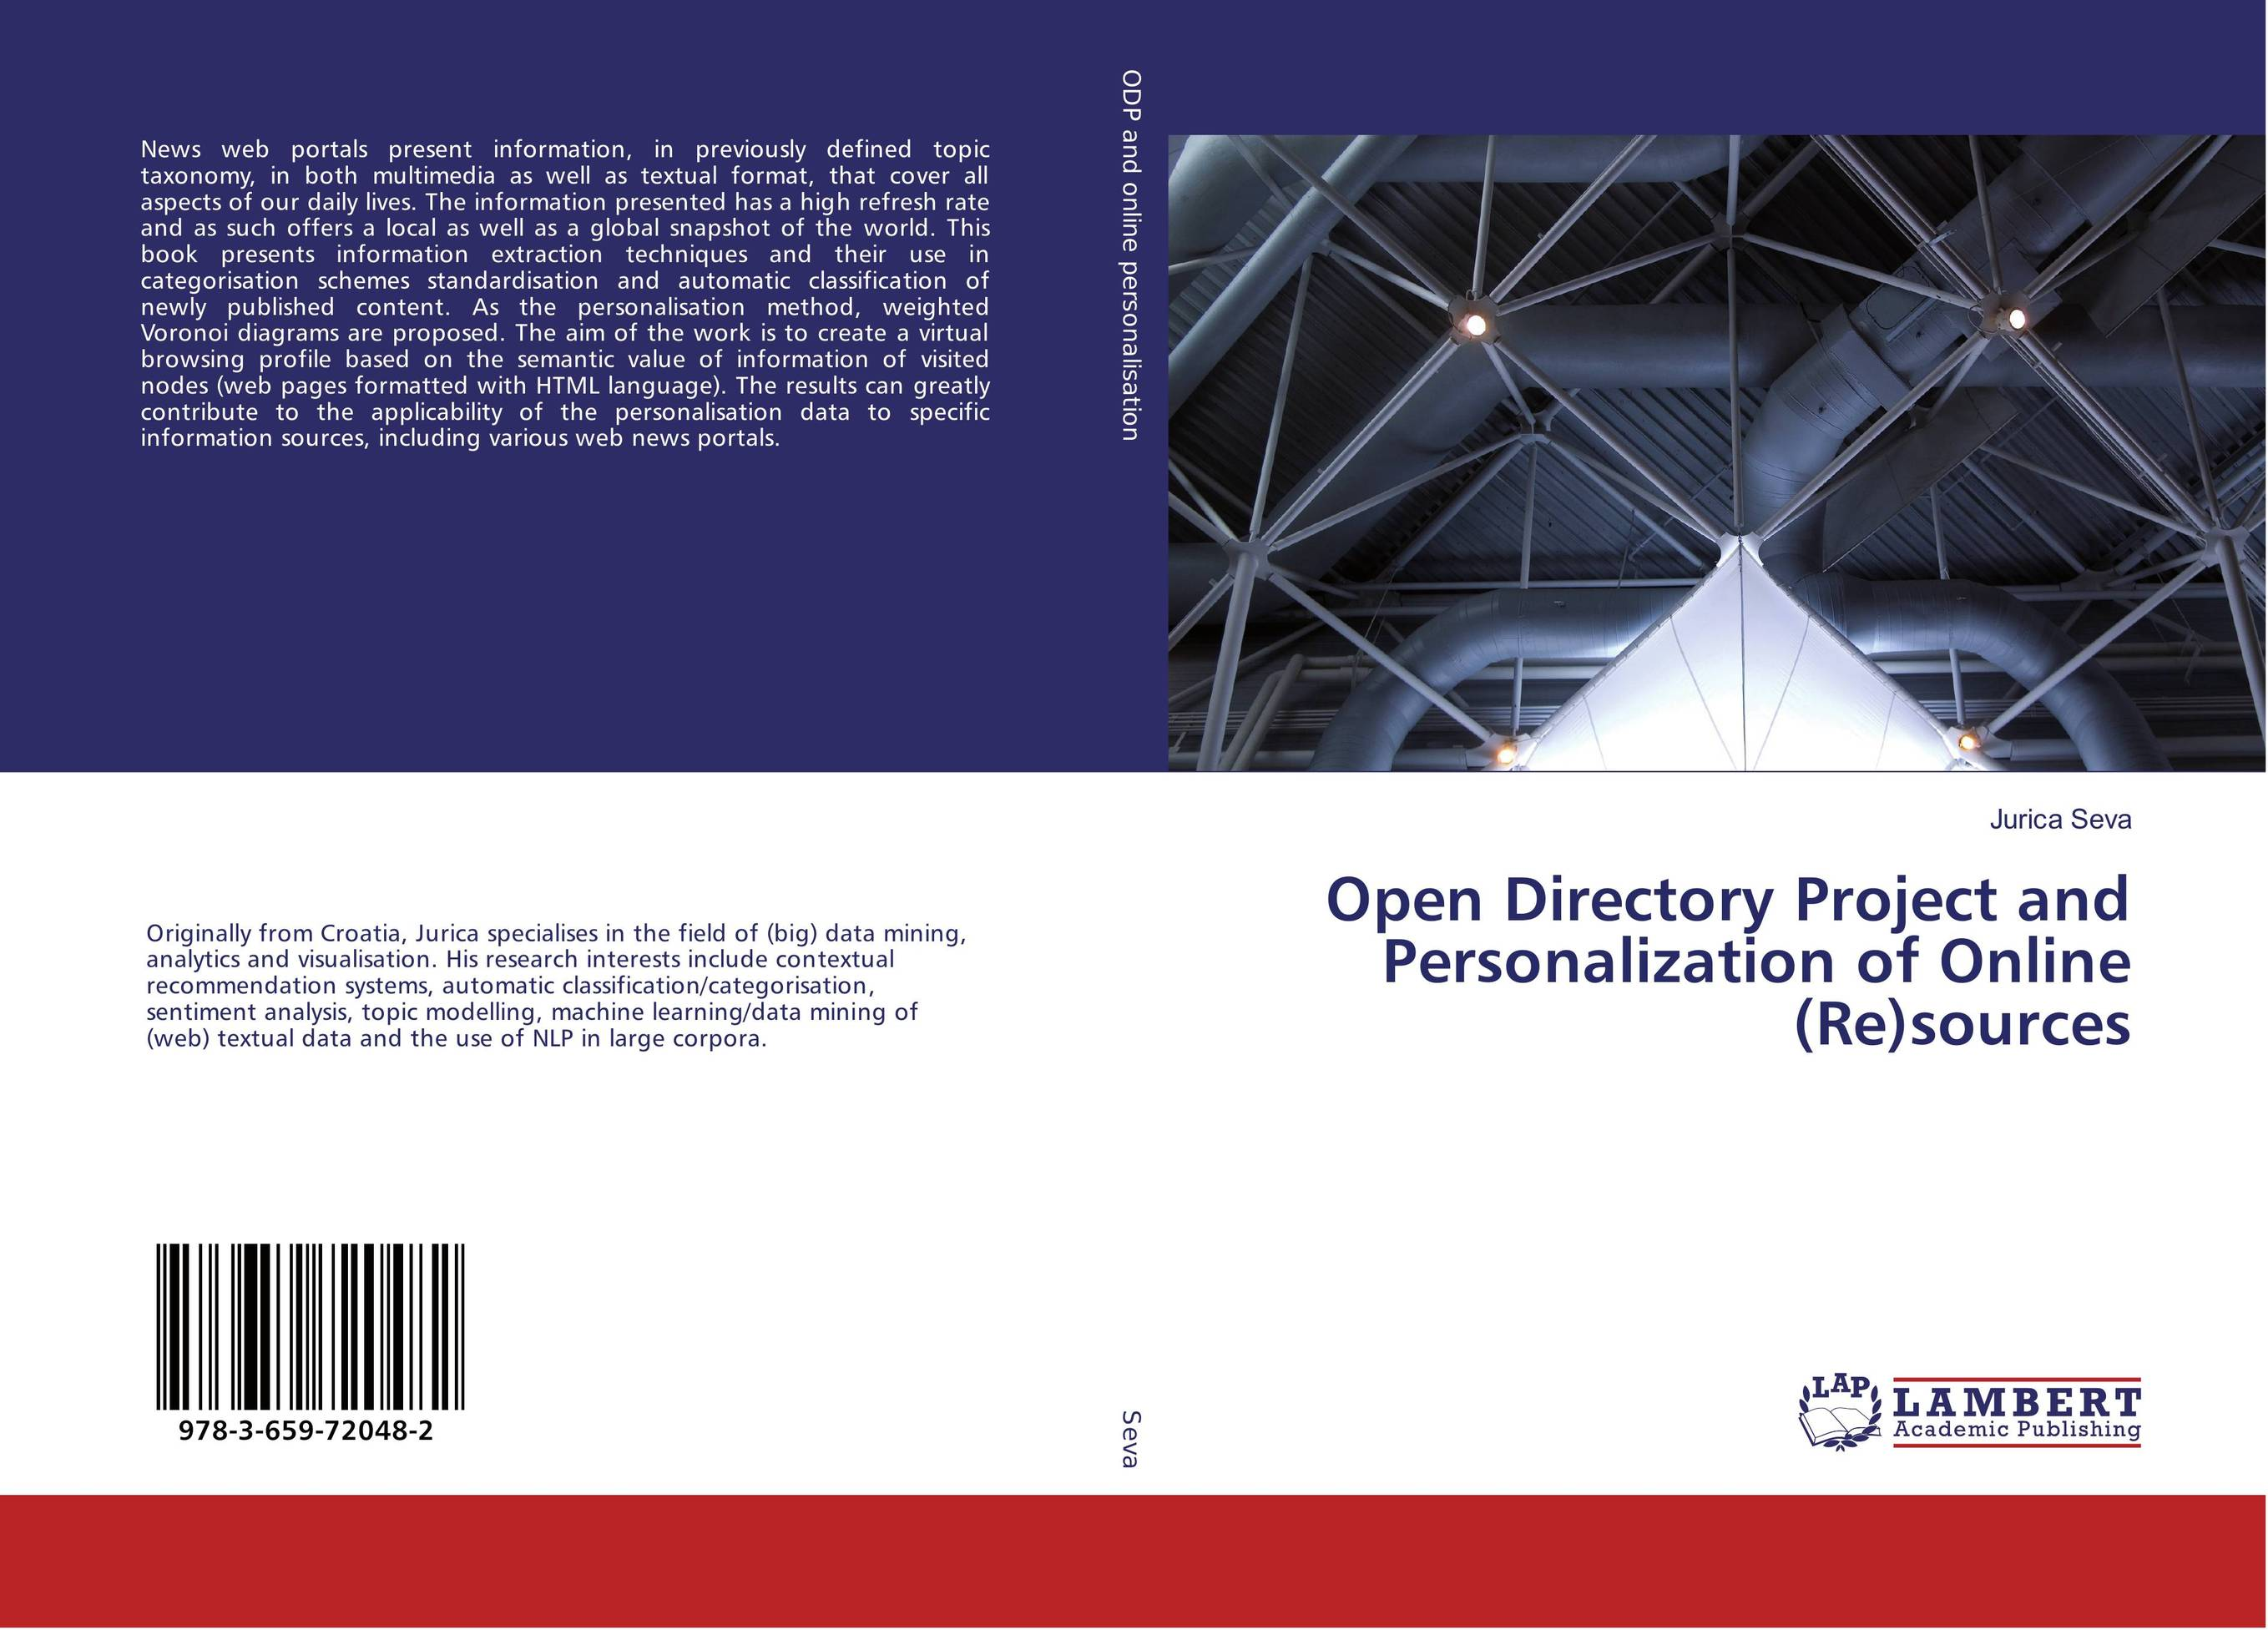 Open Directory Project and Personalization of Online (Re)sources the use of preposition sense in semantic argument classification